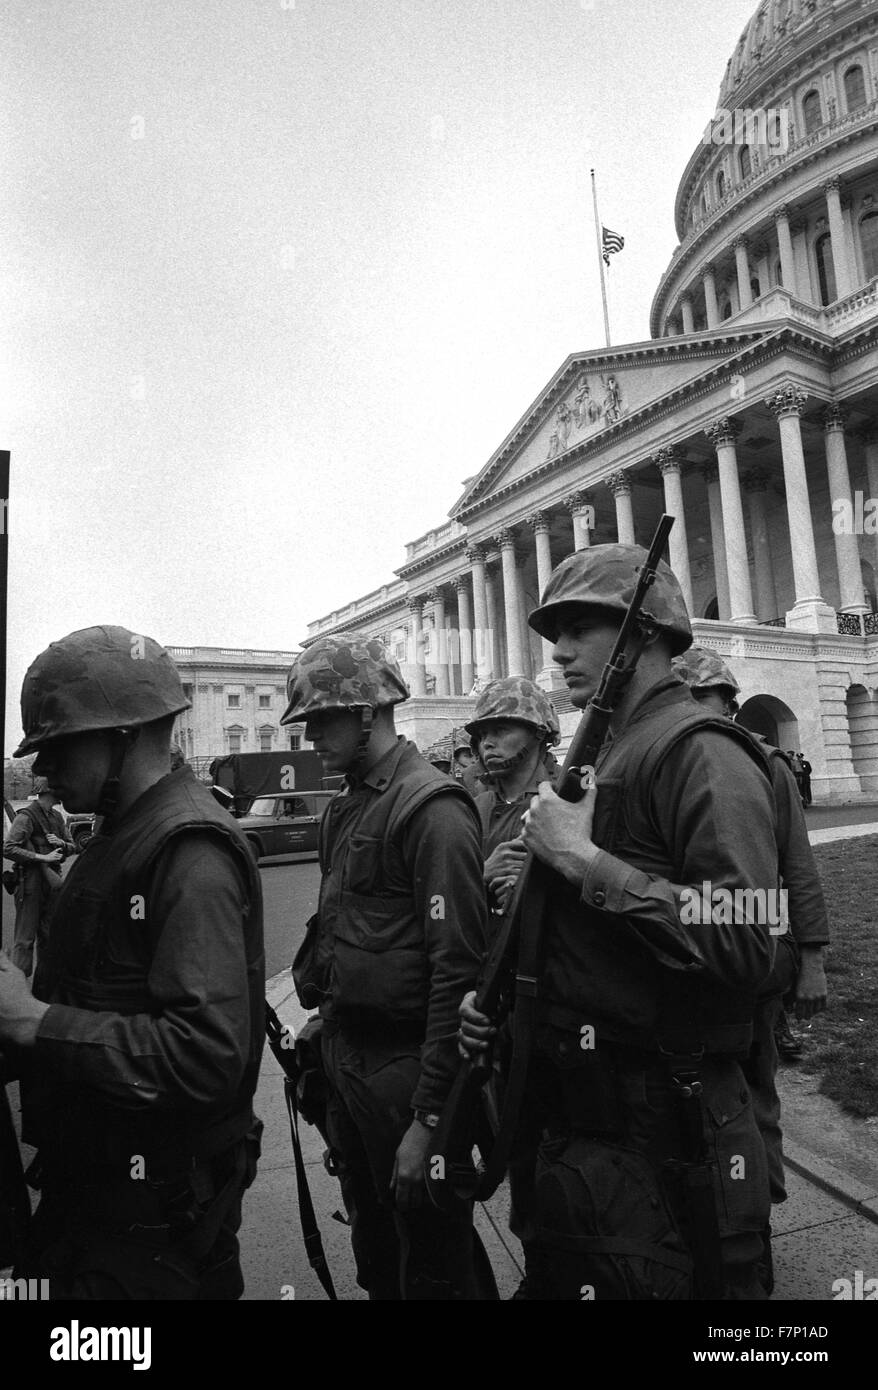 National Guard troops, near U.S. Capitol, Washington DC, during 1968 race riots - Stock Image